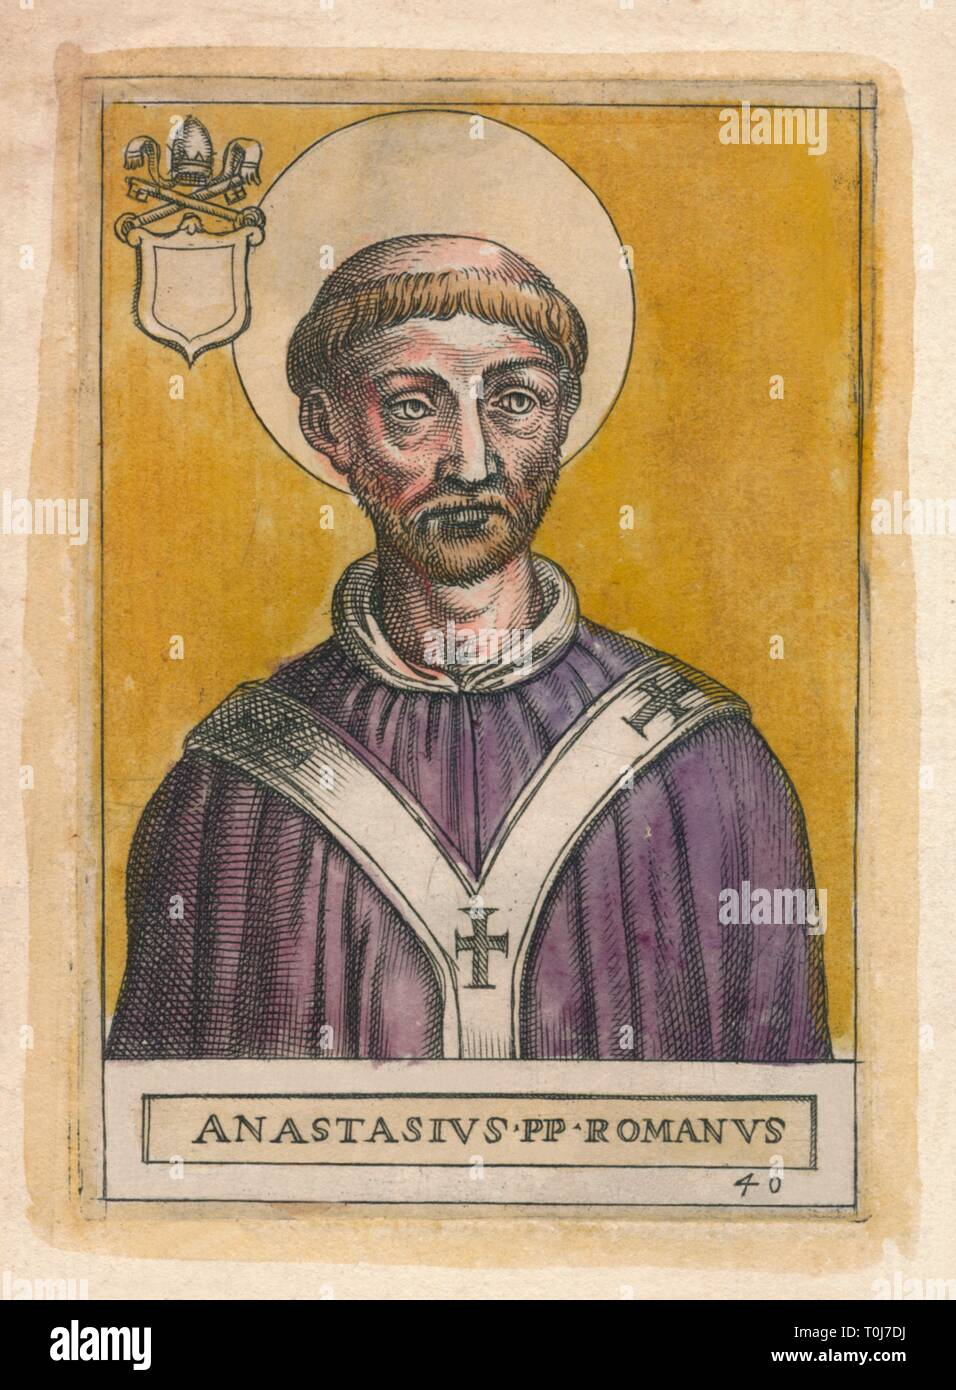 Pope Anastasius I. 'Anastasius PP Romanus'. Portrait of Pope Anastasius I (died 401 AD) who was succeeded by his son, Pope Innocent I, probably a unique case of the papacy passing from father to son. - Stock Image